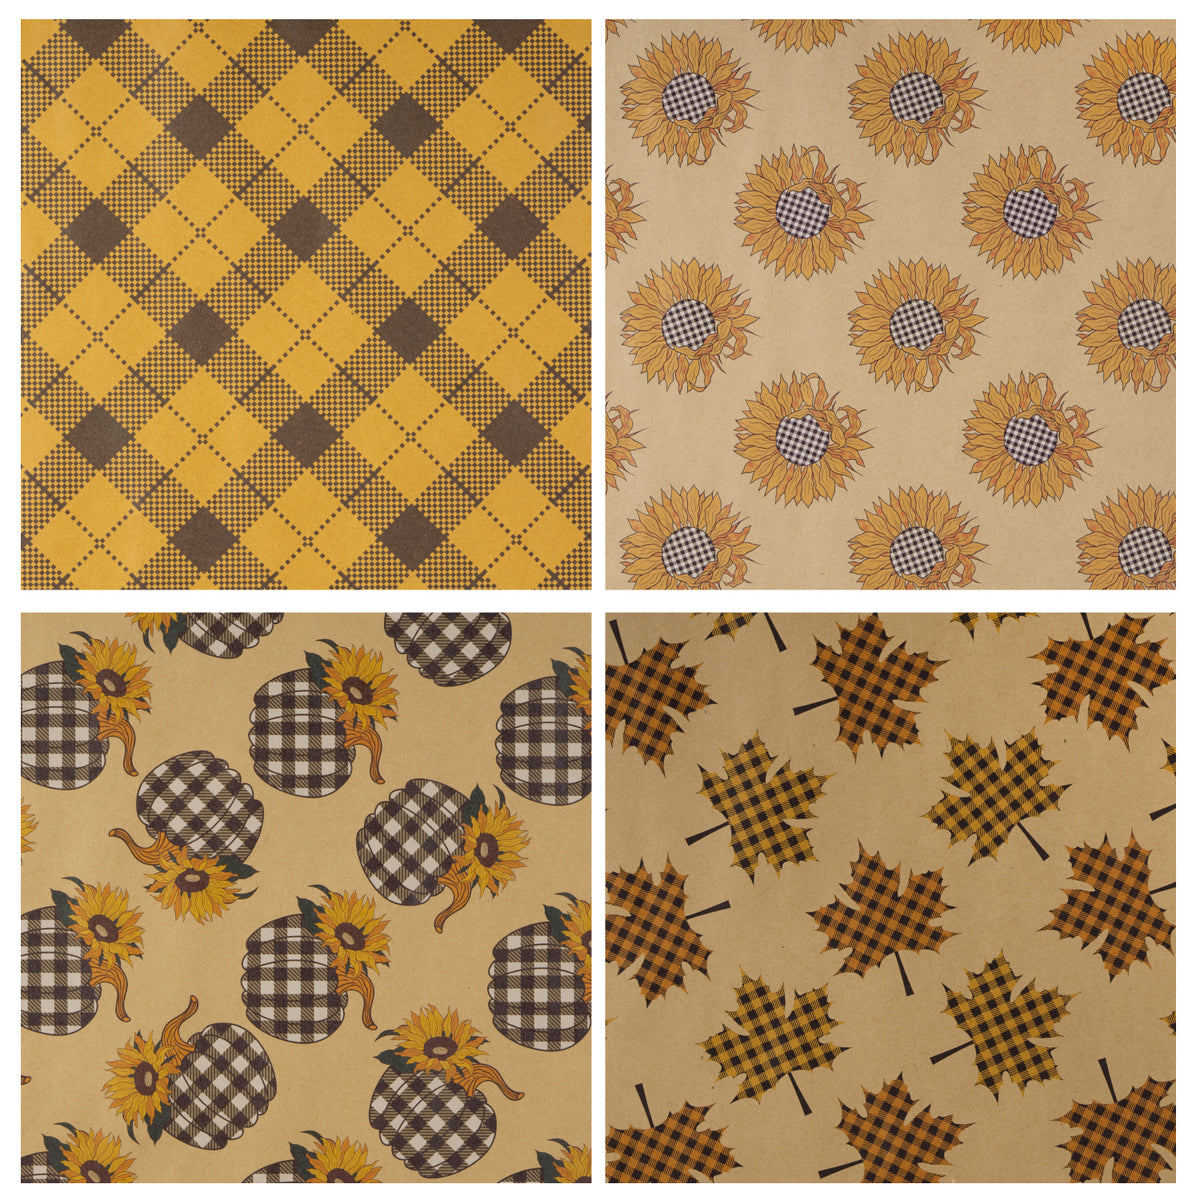 Wrapaholic-Maple-Leaf-Fall-Season-Wrapping-Paper-Sheets-3